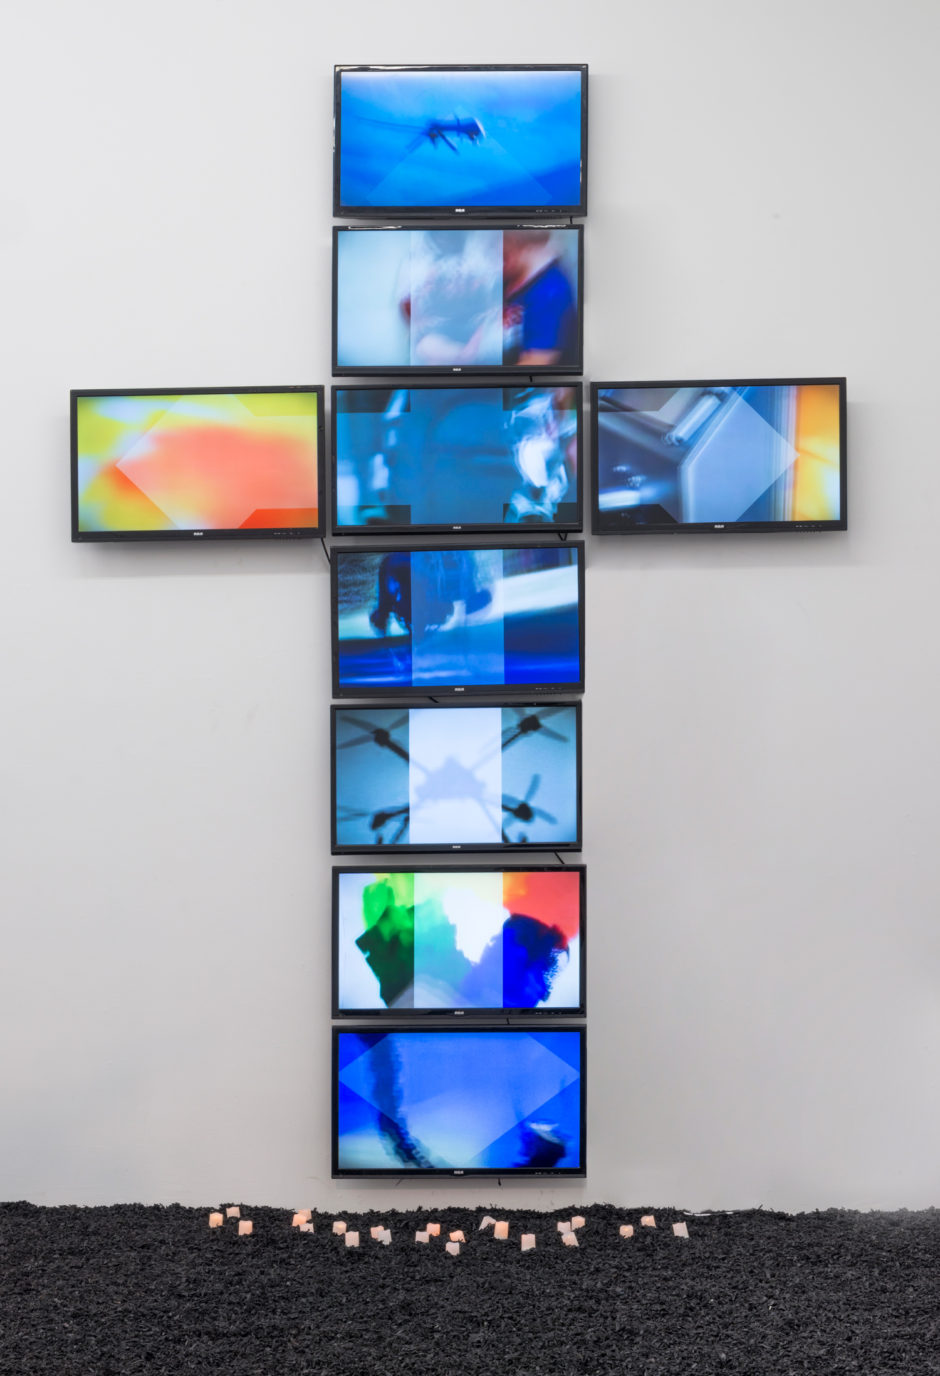 """Untitled"", 2015, 9 LED televisions 126 x 90 inches 320 x 228.6 cm"